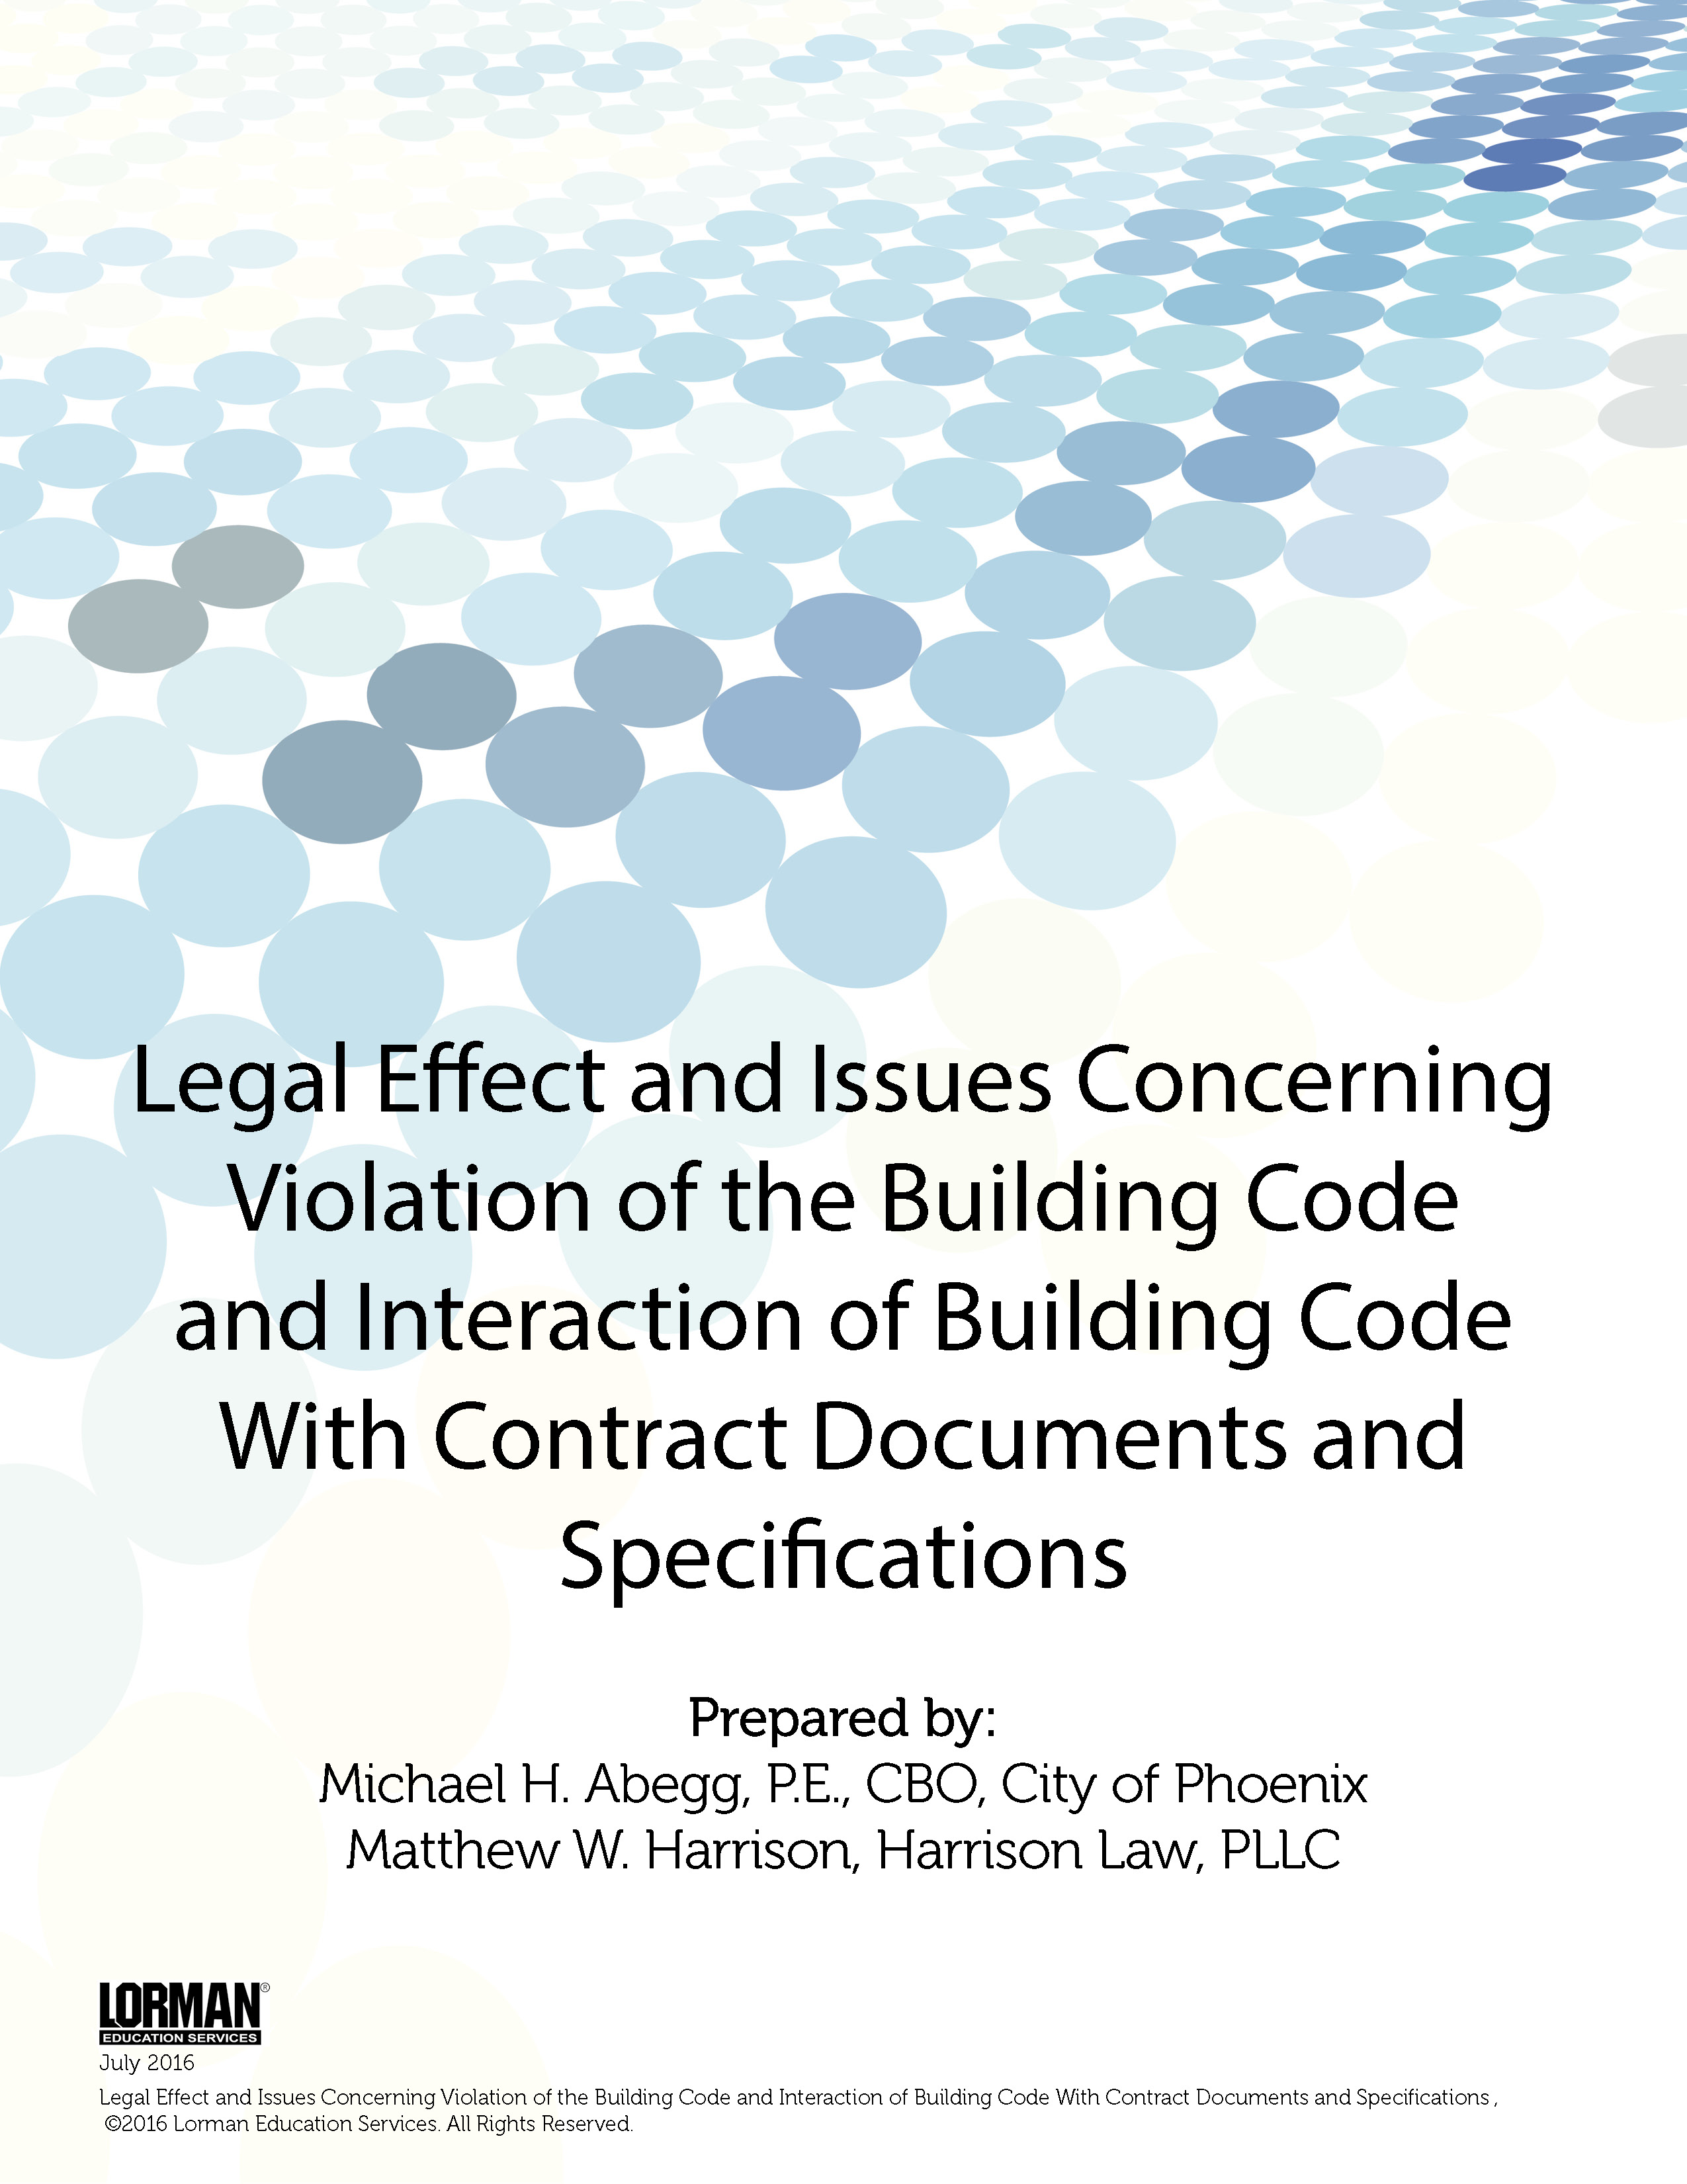 Legal Effect and Issues Concerning Violation of the Building Code and Interaction of Building Code With Contract Documents and Specifications